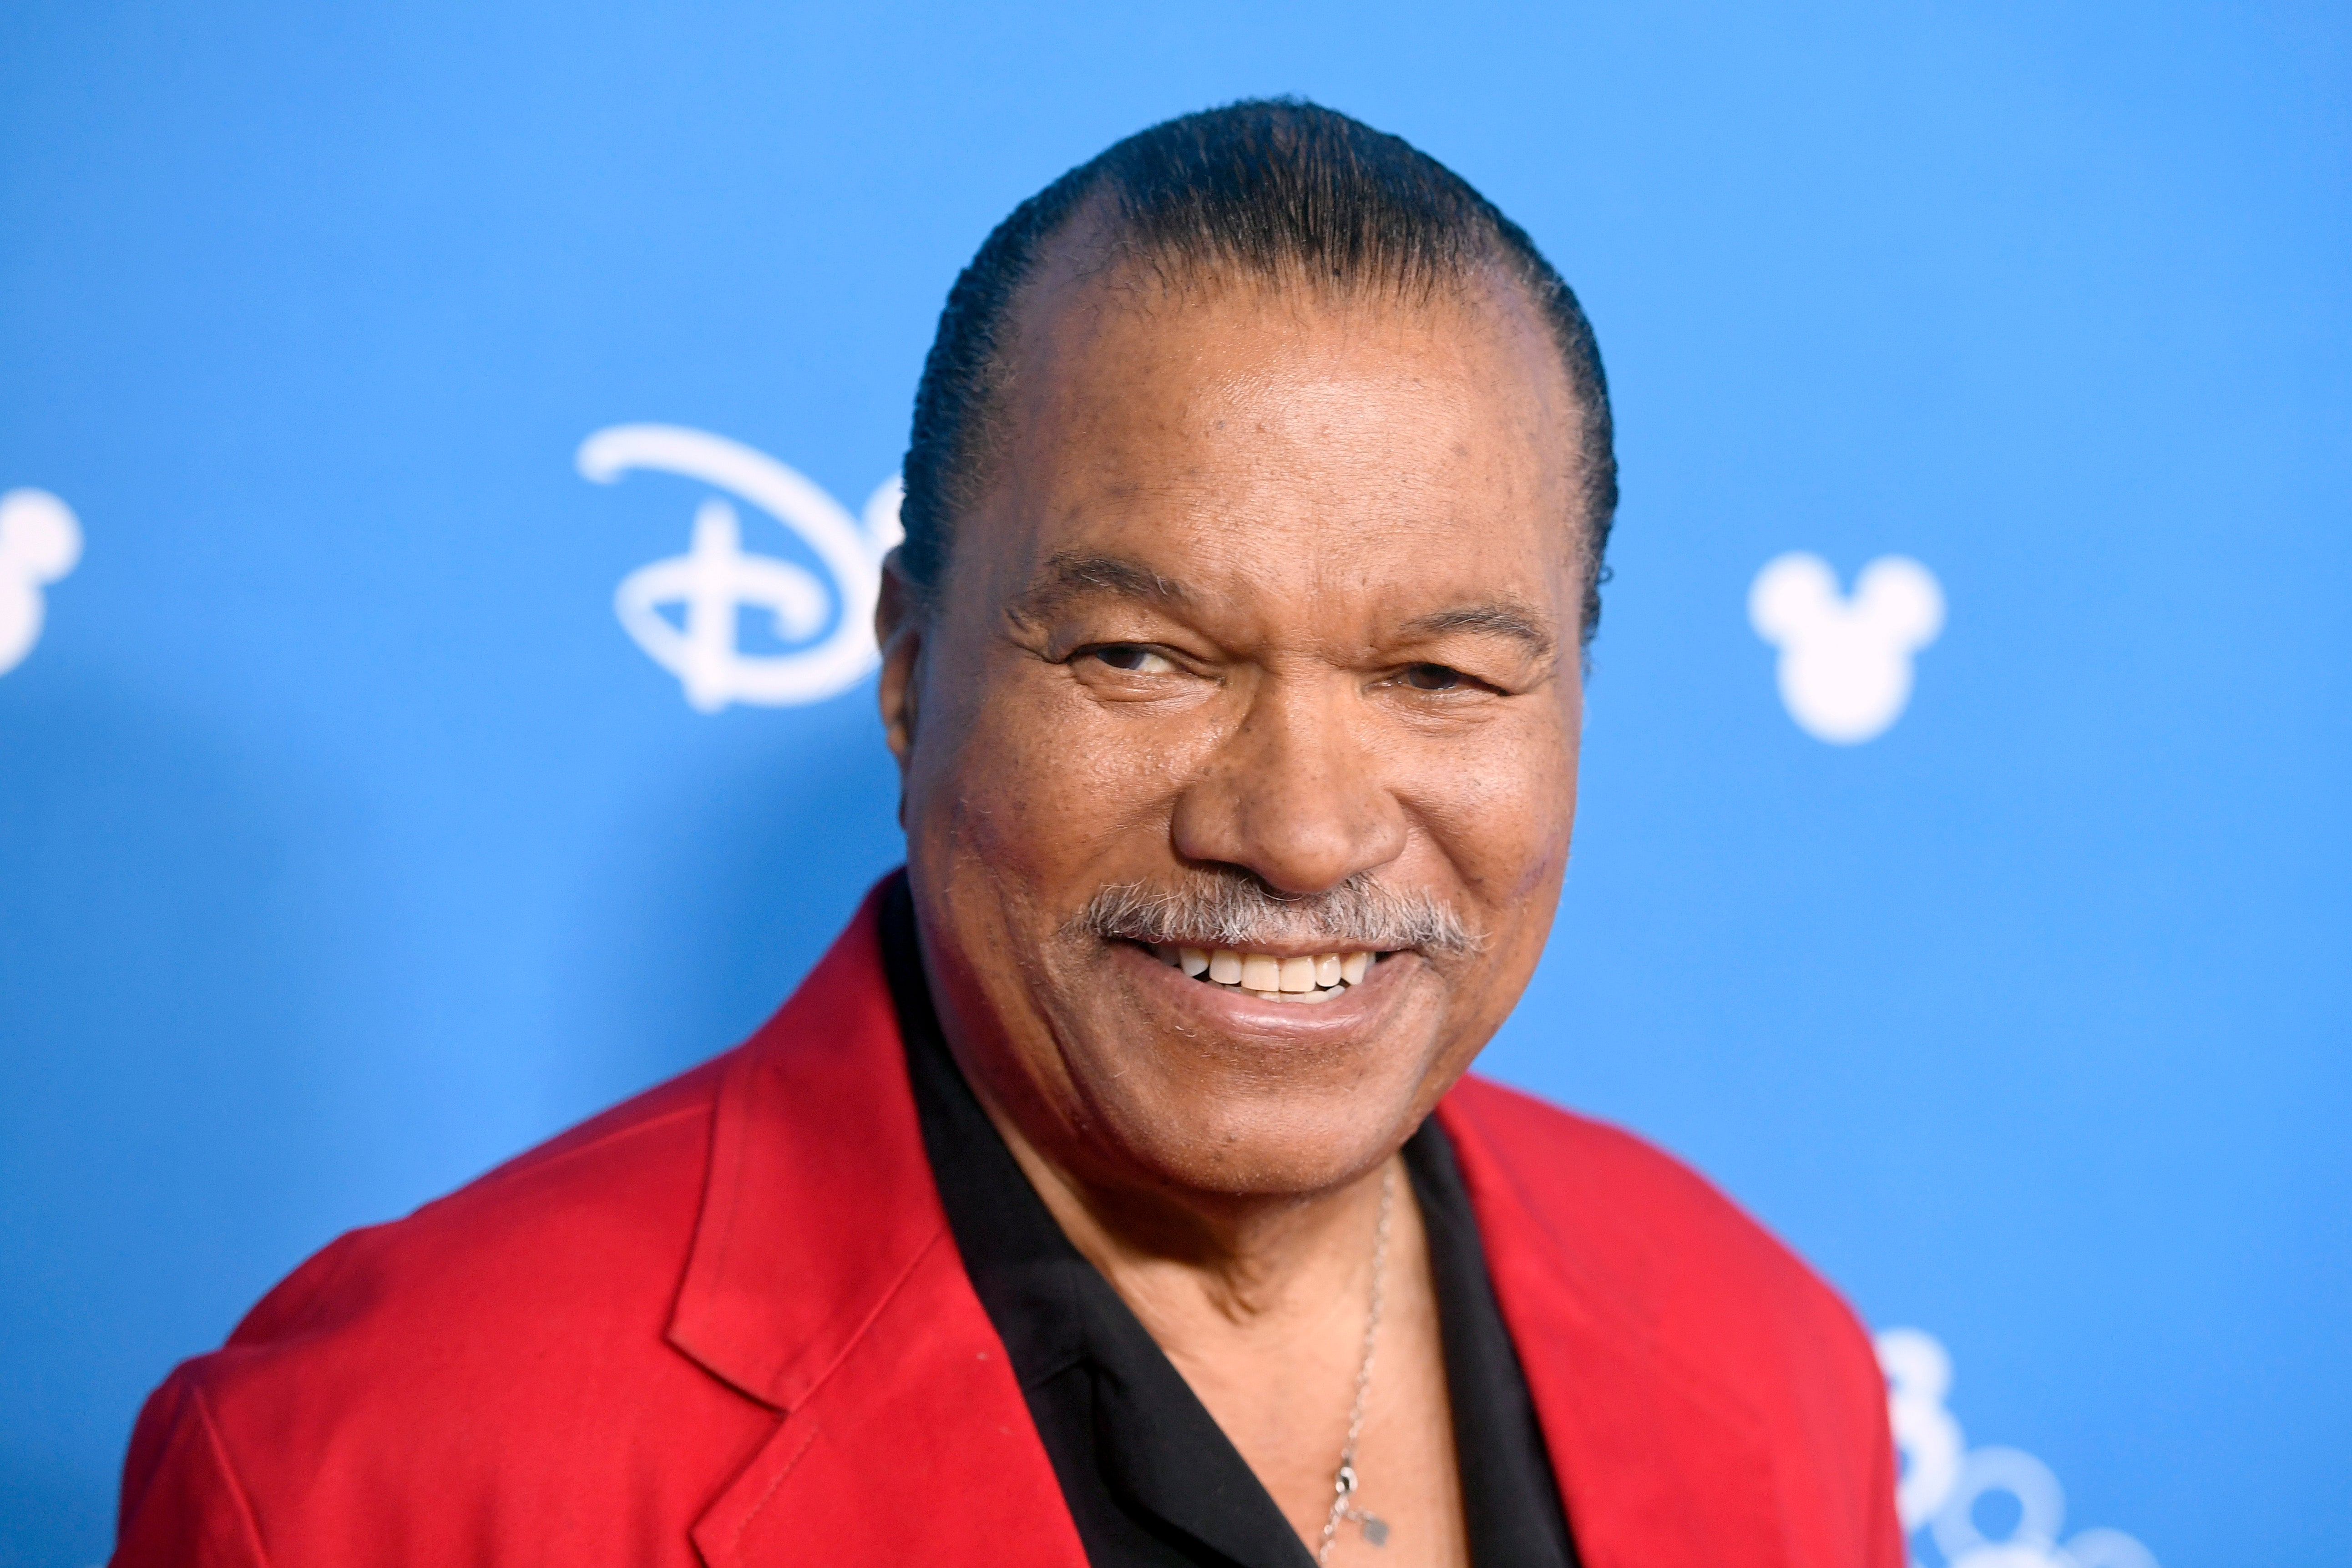 Billy Dee Williams Celebrated After Coming Out As Gender Fluid